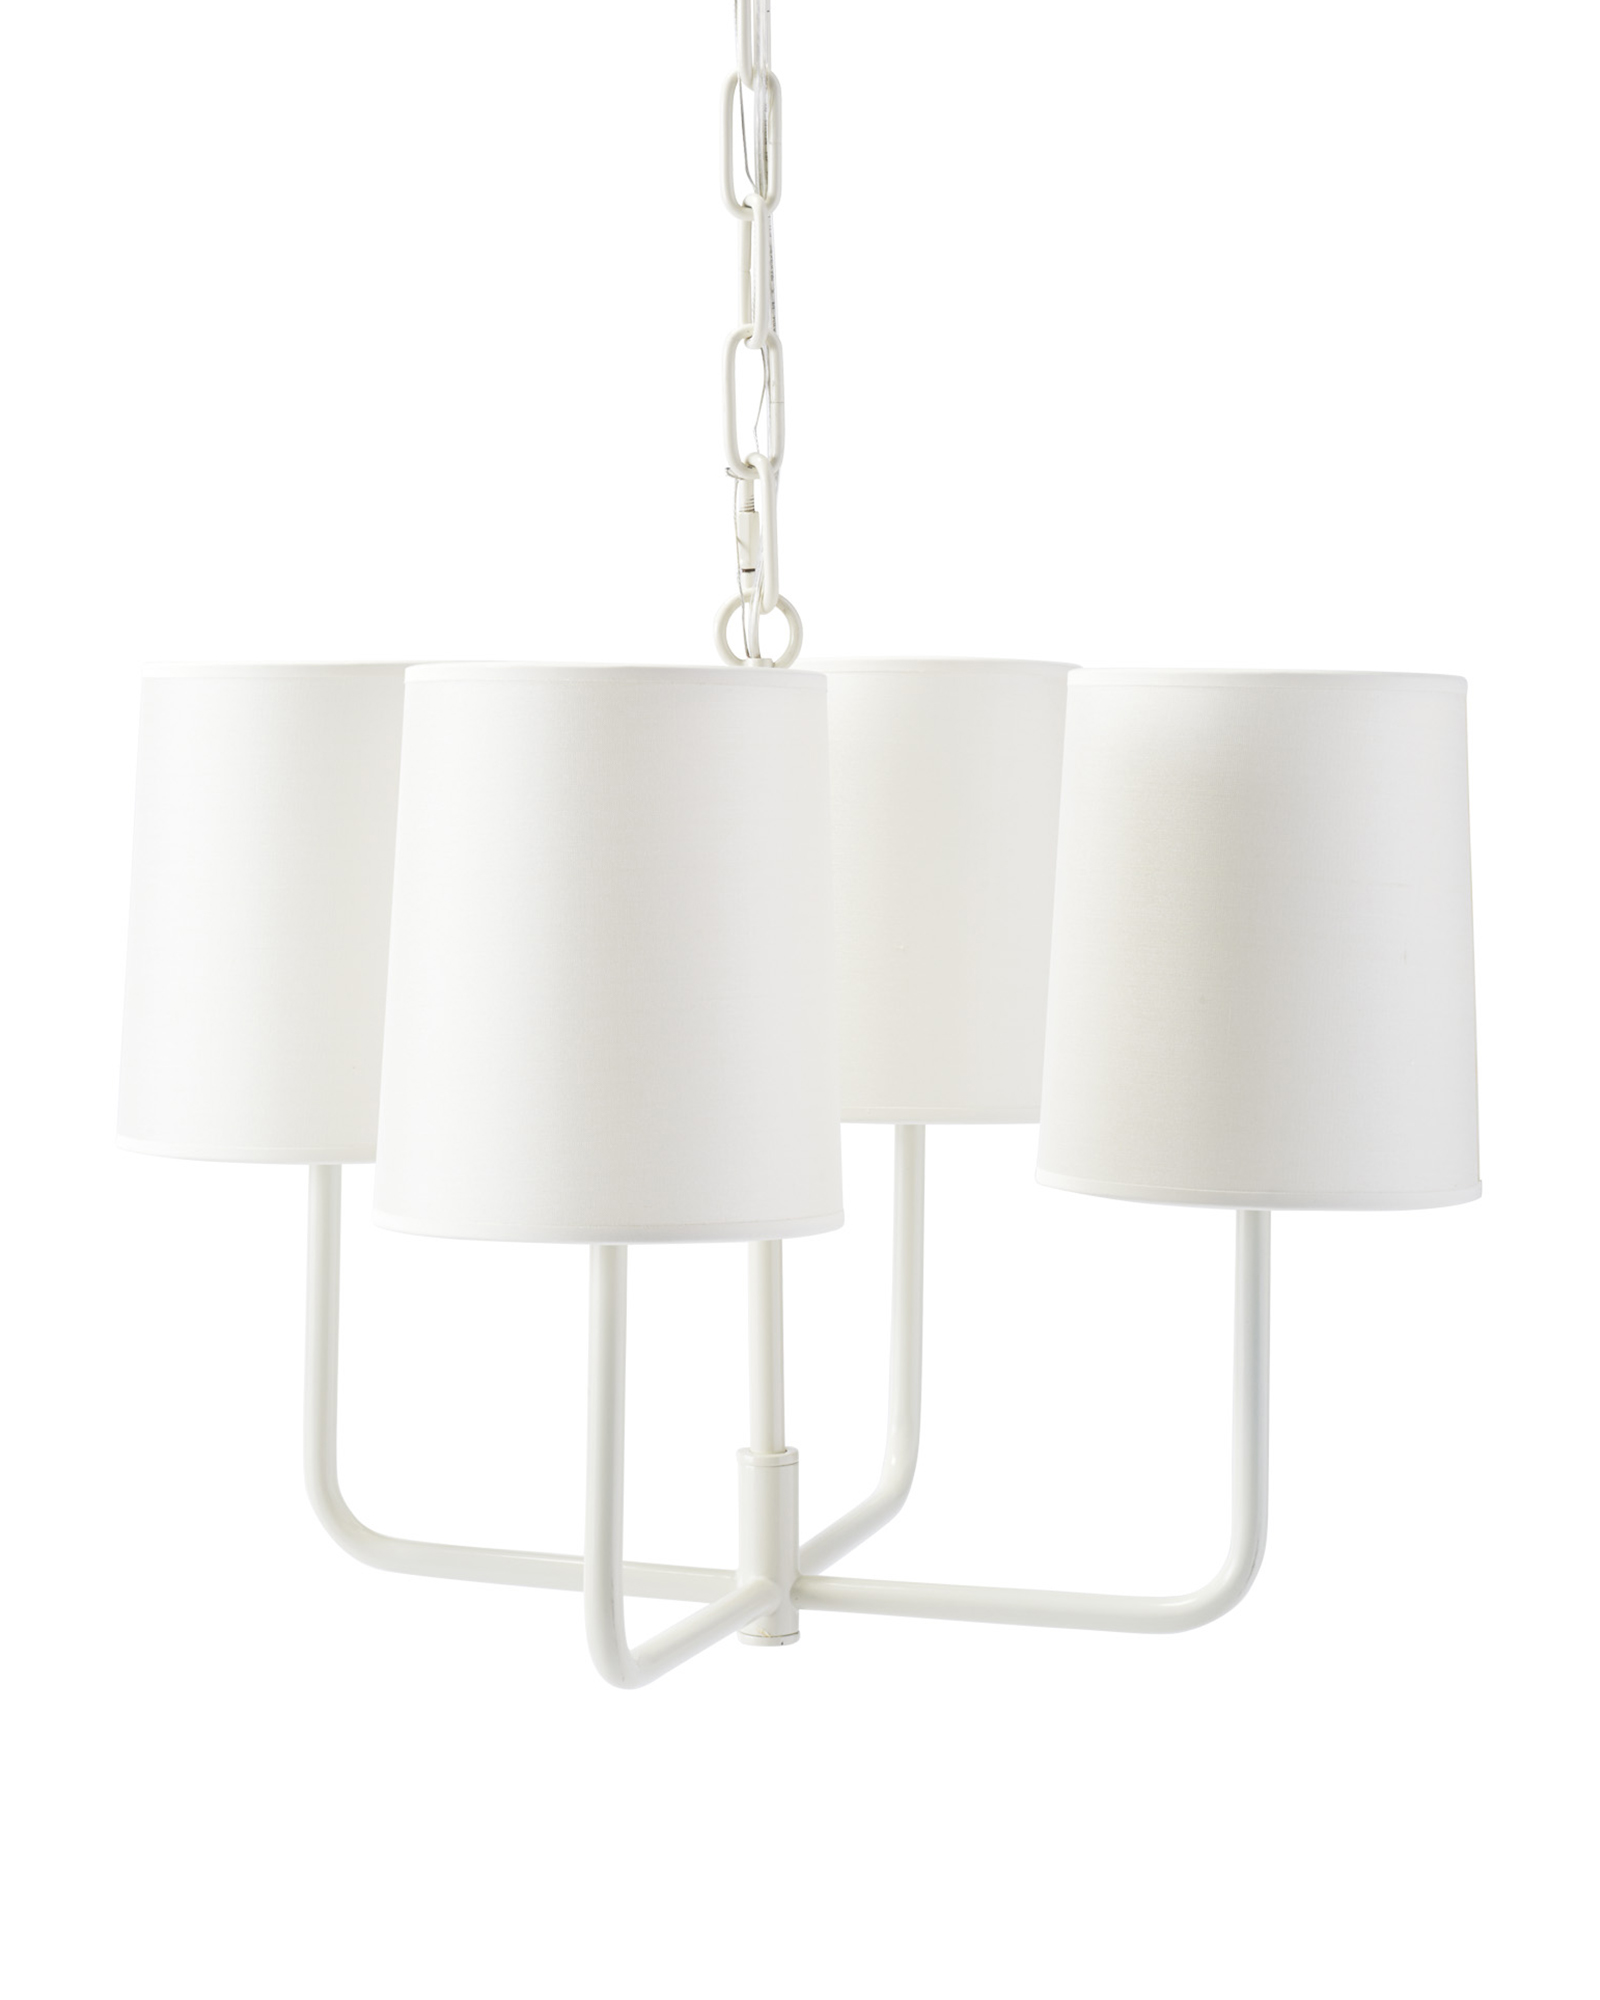 Lighting_Fairmont_Pendant_4_White_MV_Crop_OL.jpg